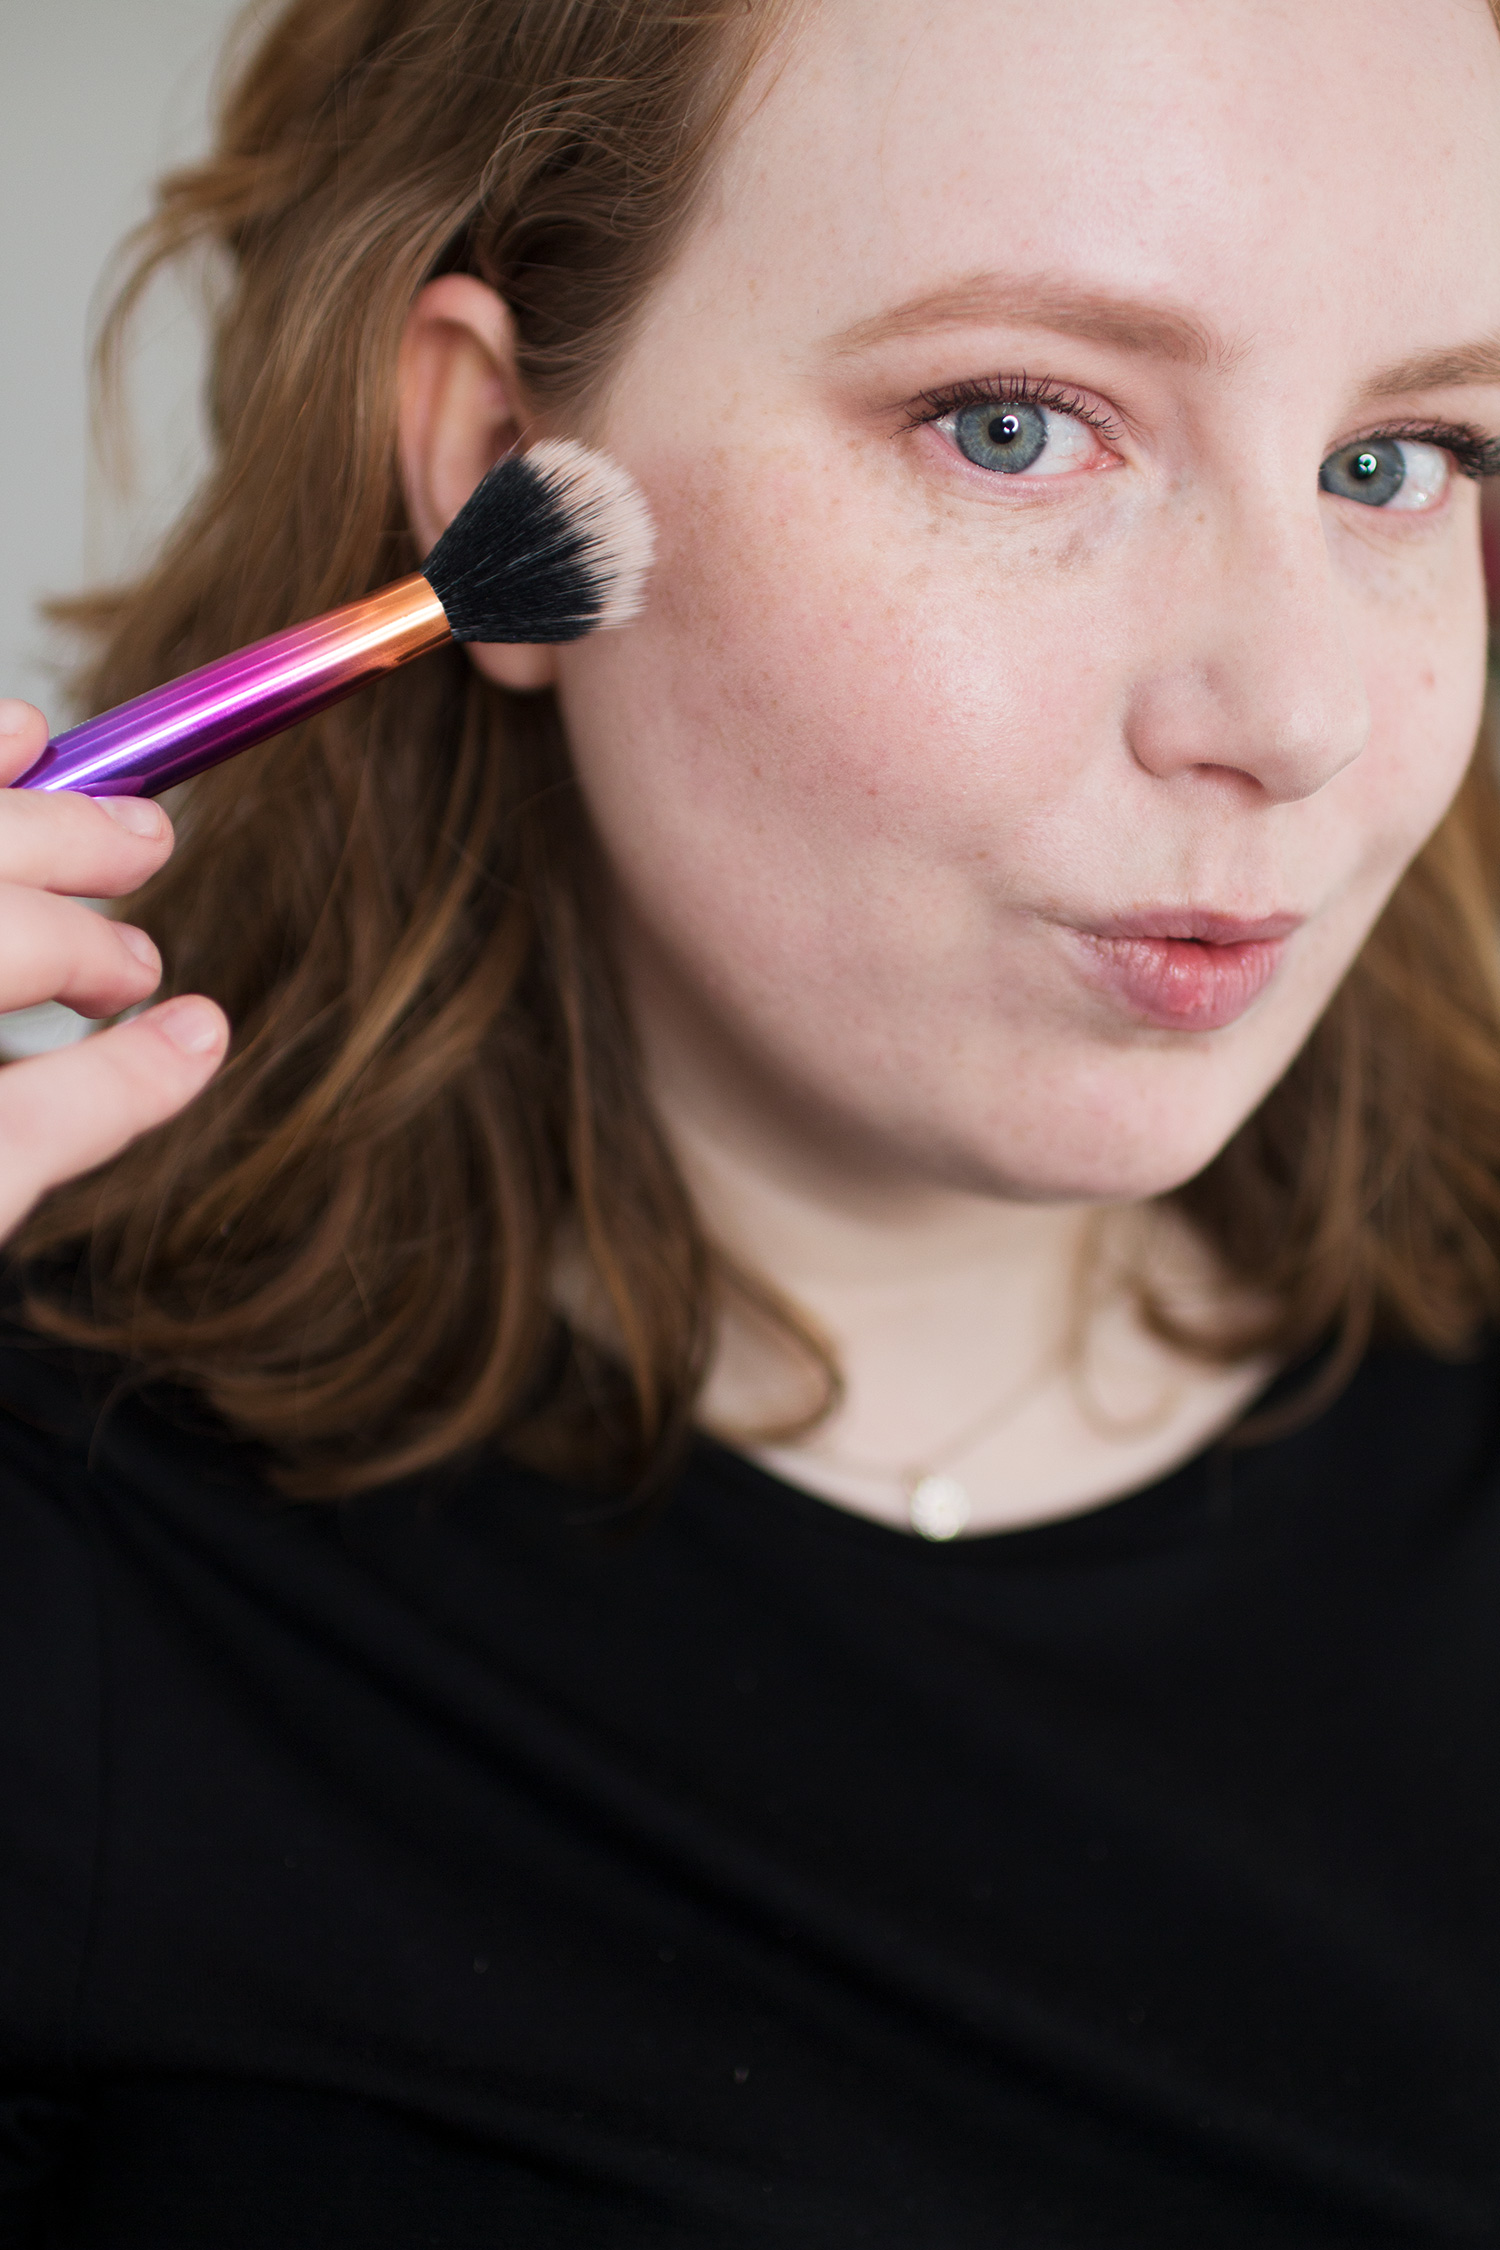 Alice Red applying Max Factor Creme Puff Blush in Nude Mauve